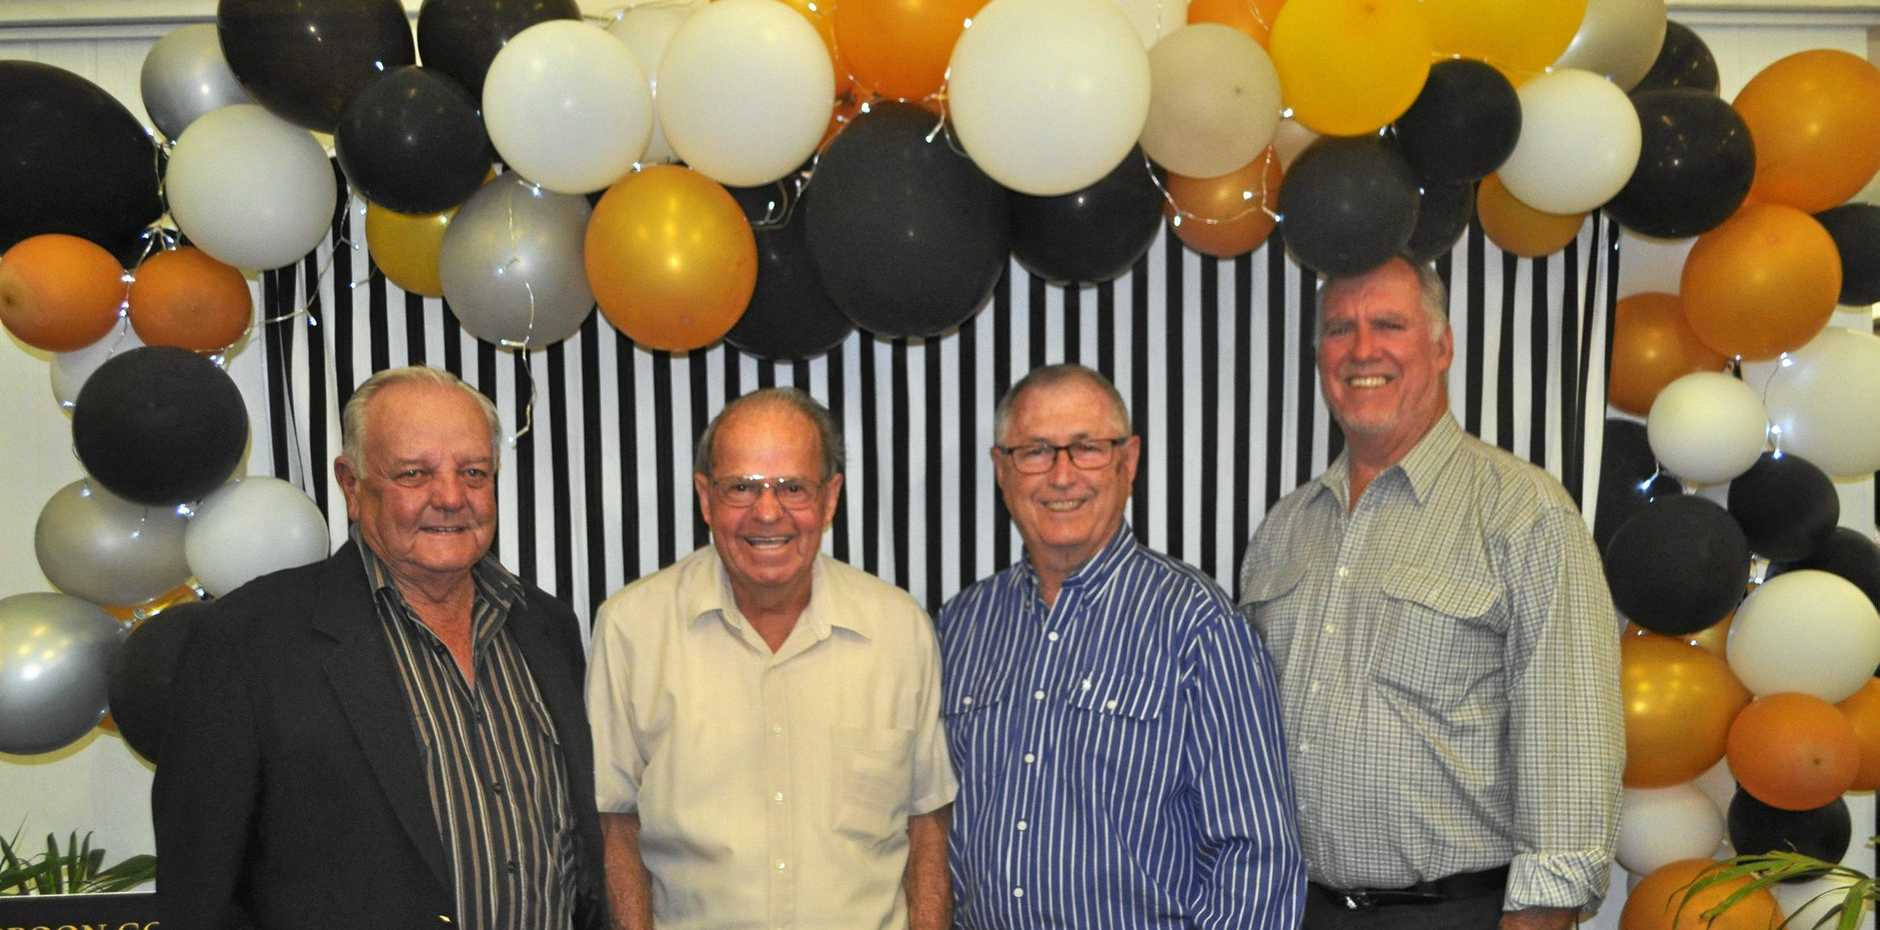 PROUD HISTORY: Past and current Yeppoon Golf Club presidents John Halberstater, John Ware, Greg Allen and Mick Cranny.